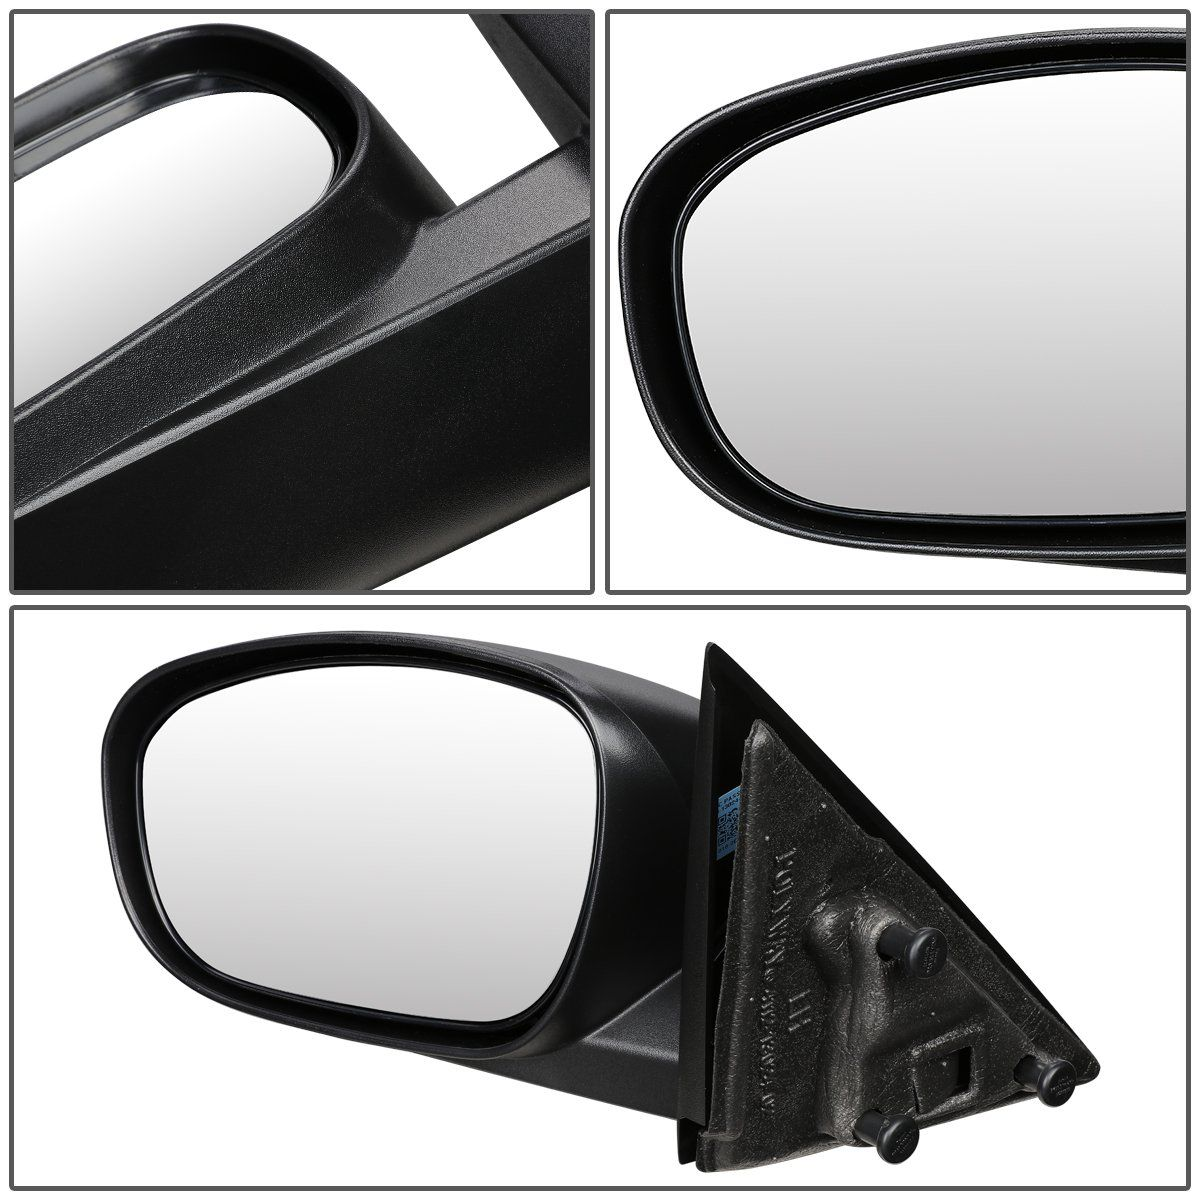 07 10 Chrysler 300 06 10 Dodge Charger Powered Left Driver Side Door Mirror W Heated Ch1320295 Dodge Charger Chrysler 300 Chrysler